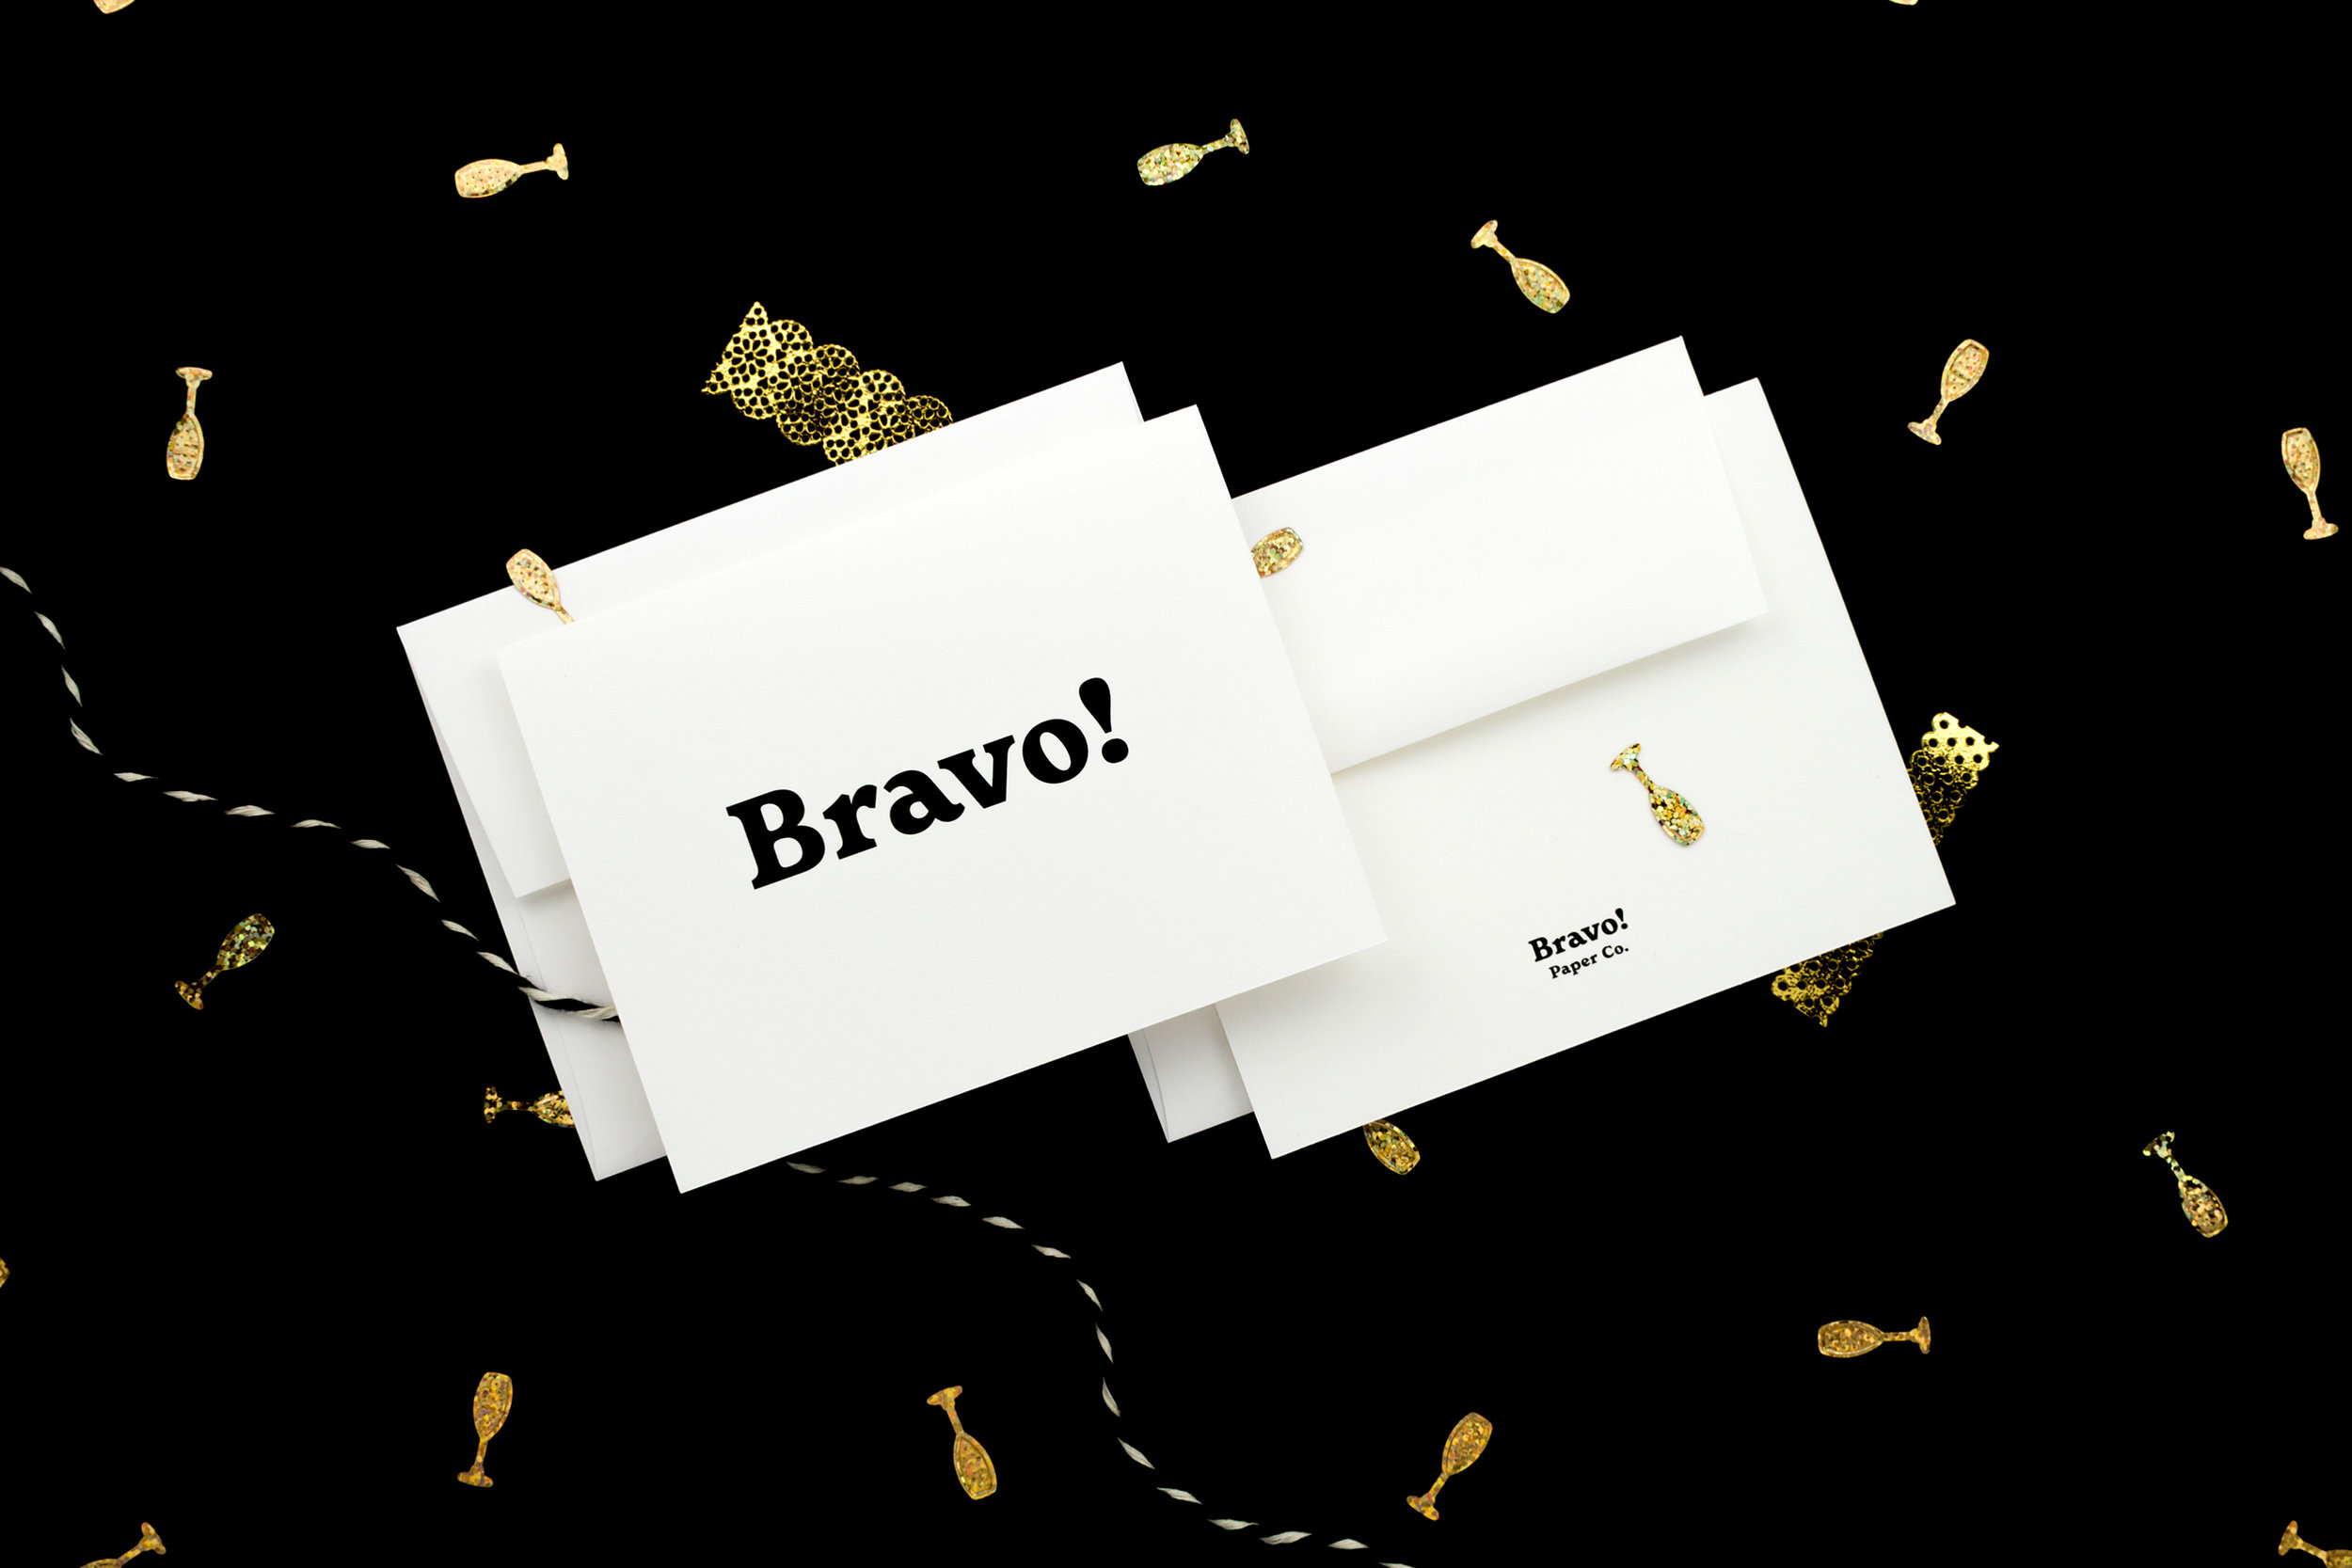 GreetingCards_Bravo_001.jpg